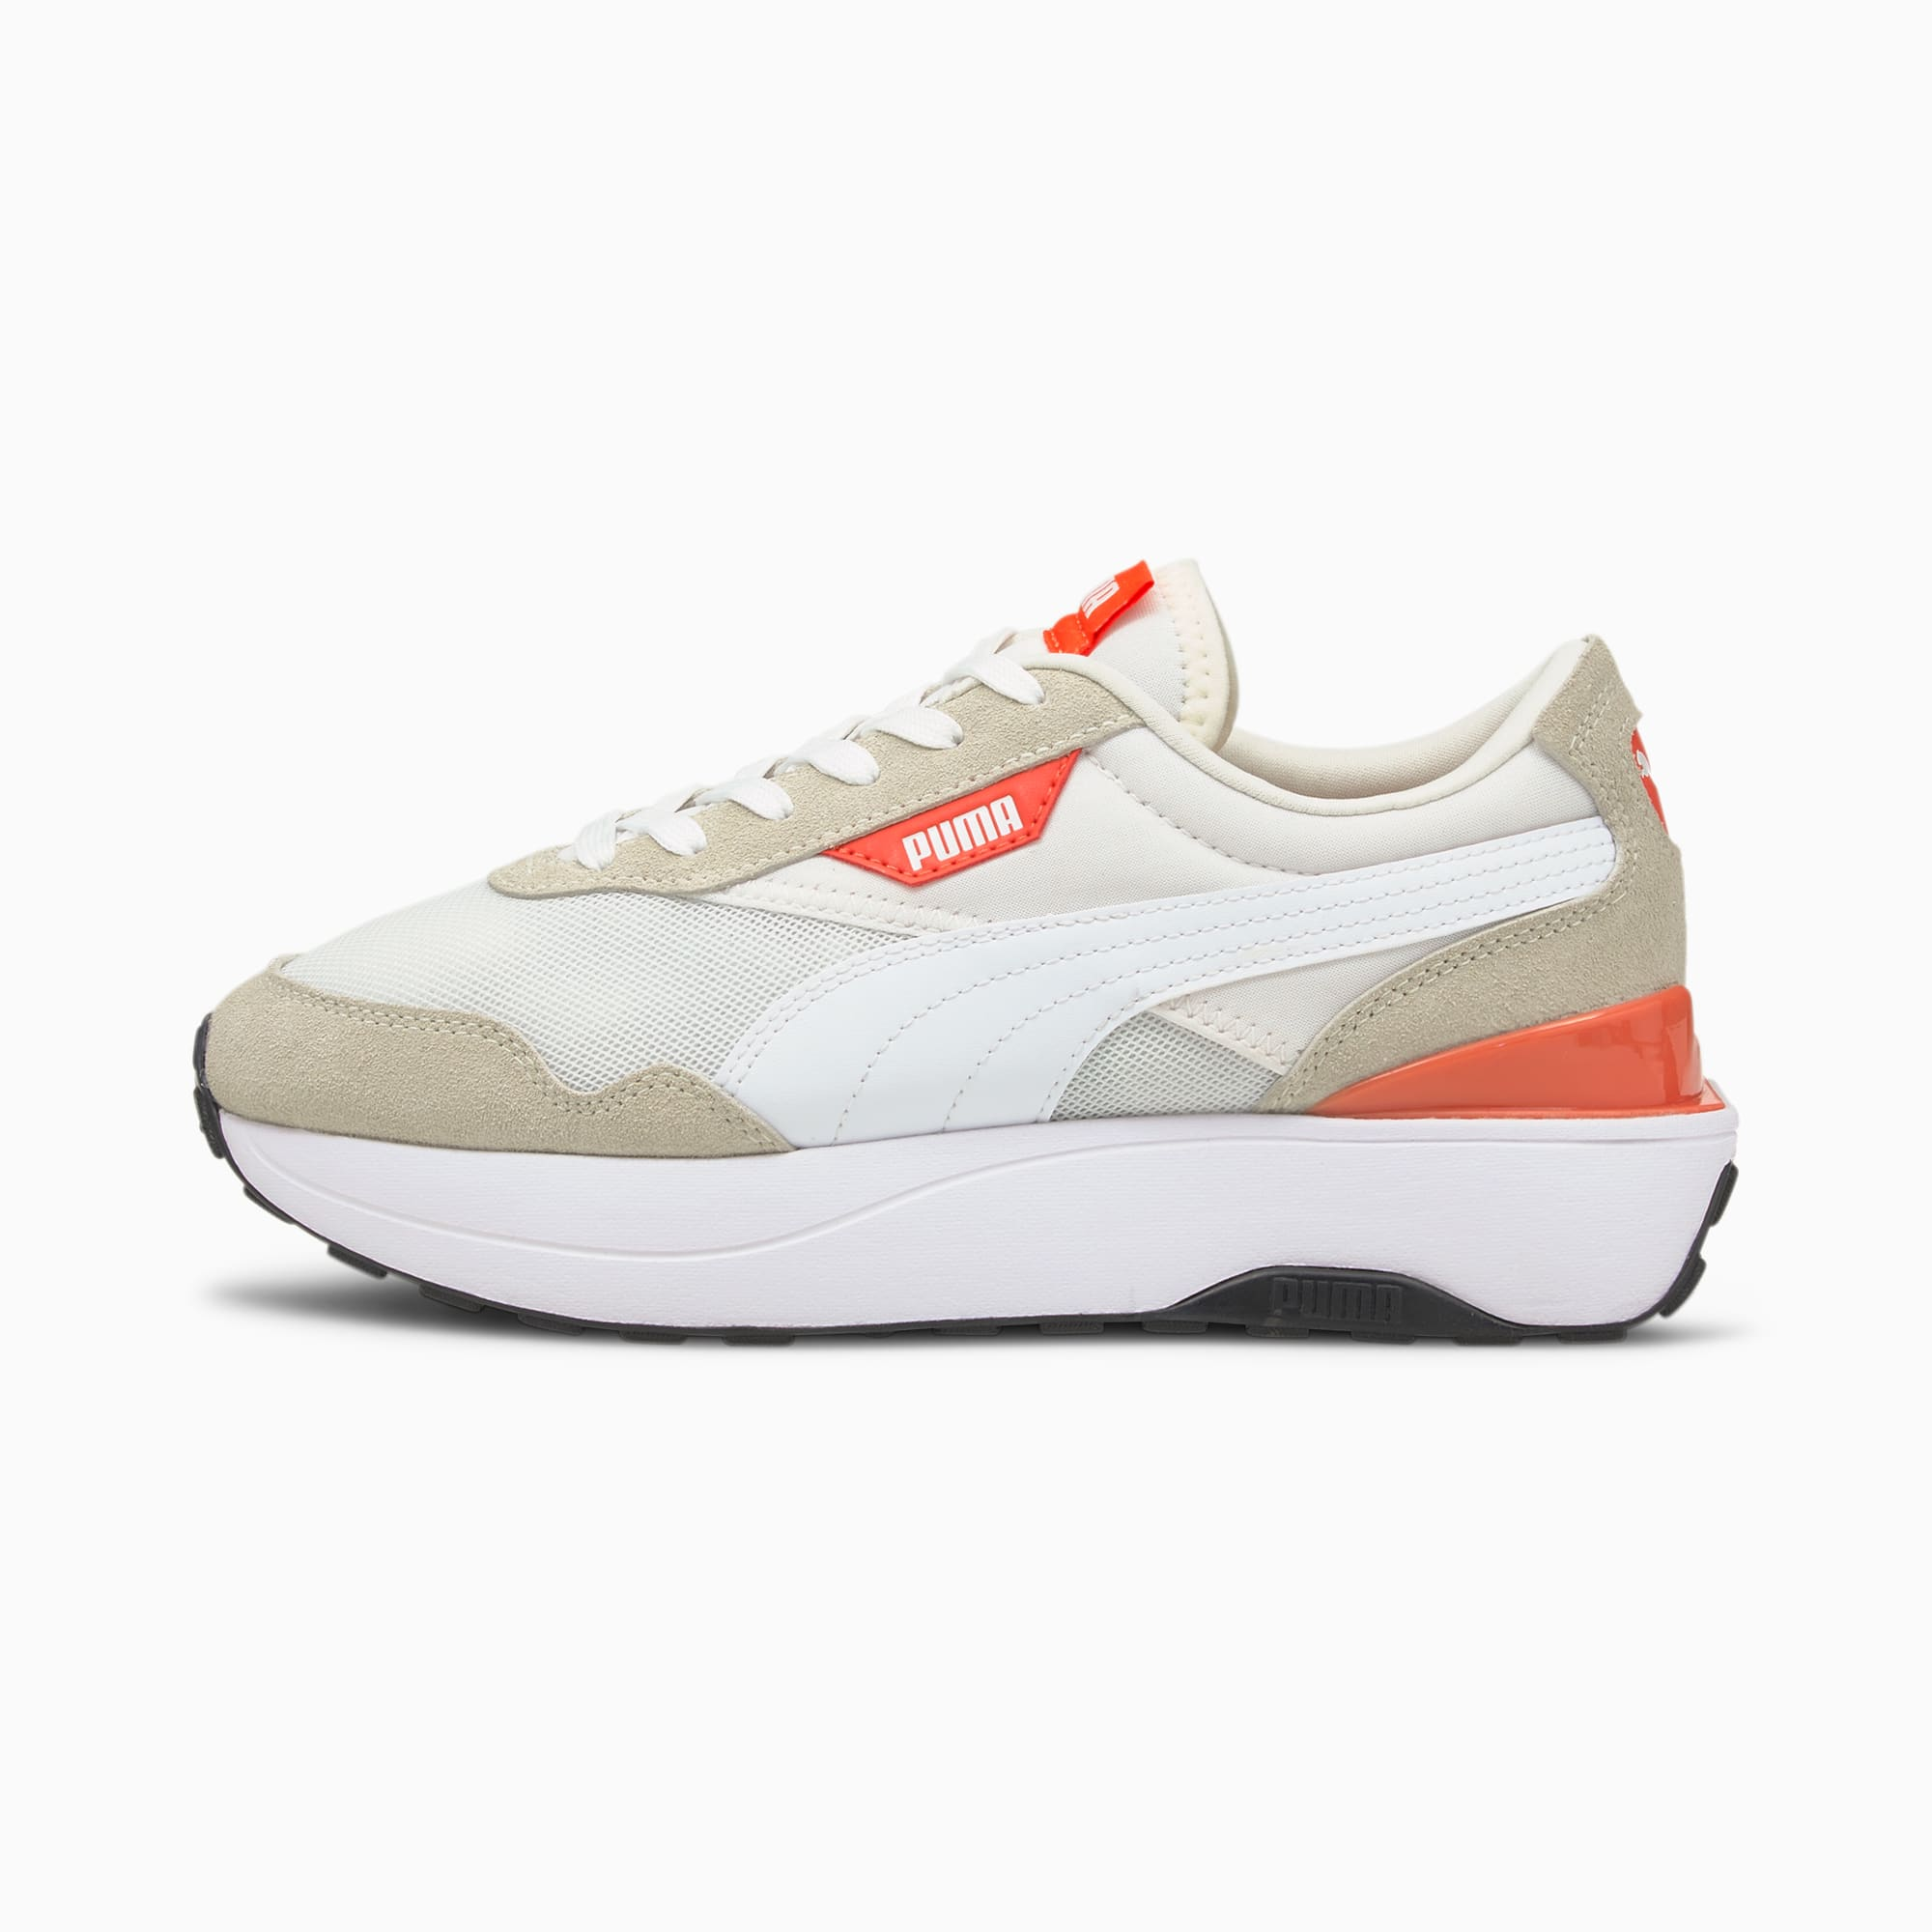 Cruise Rider Classic sneakers dames, Wit, Maat 40,5 | PUMA